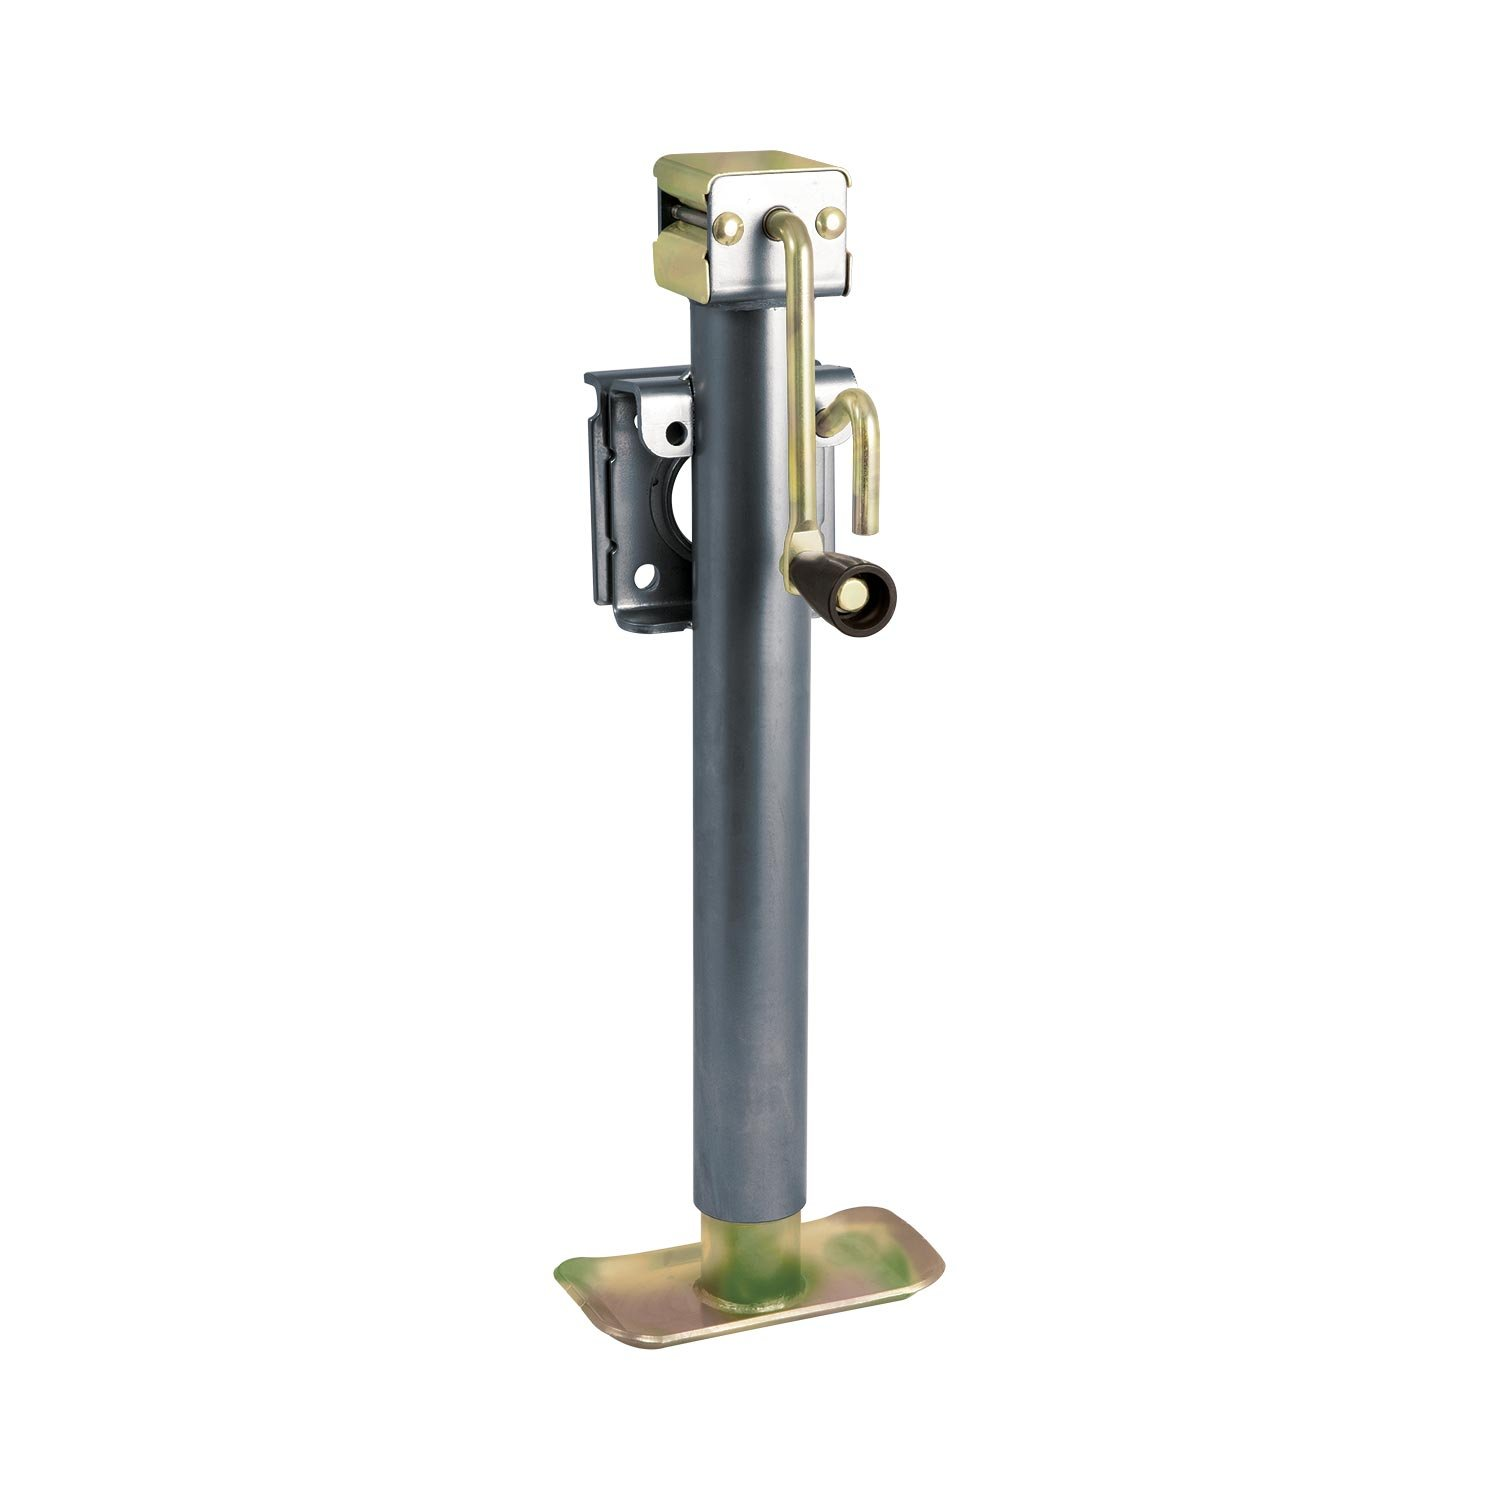 Koch Industries 4211025 Trailer Jack, Weld-On Swivel Flange Mount, 5,000-pound Lift Capacity, Sidewind, 15-inch Travel